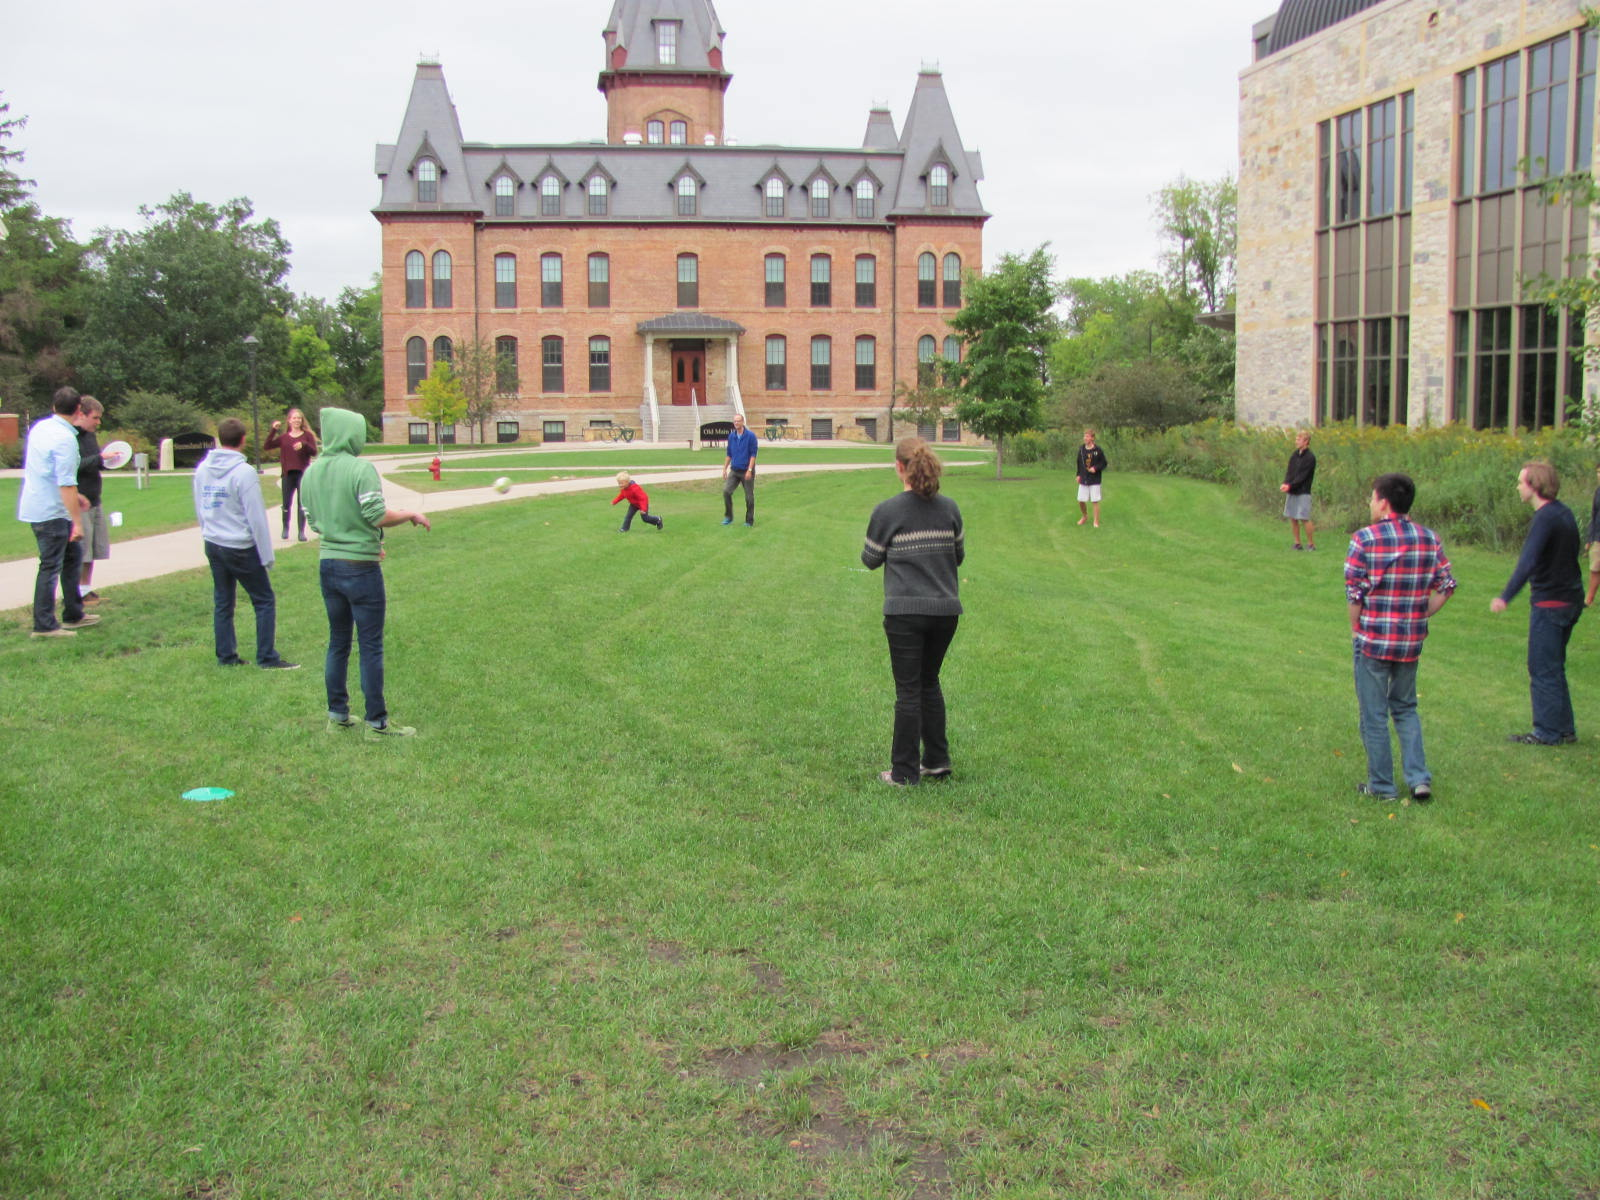 Playing ball on the lawn in front of the science building.